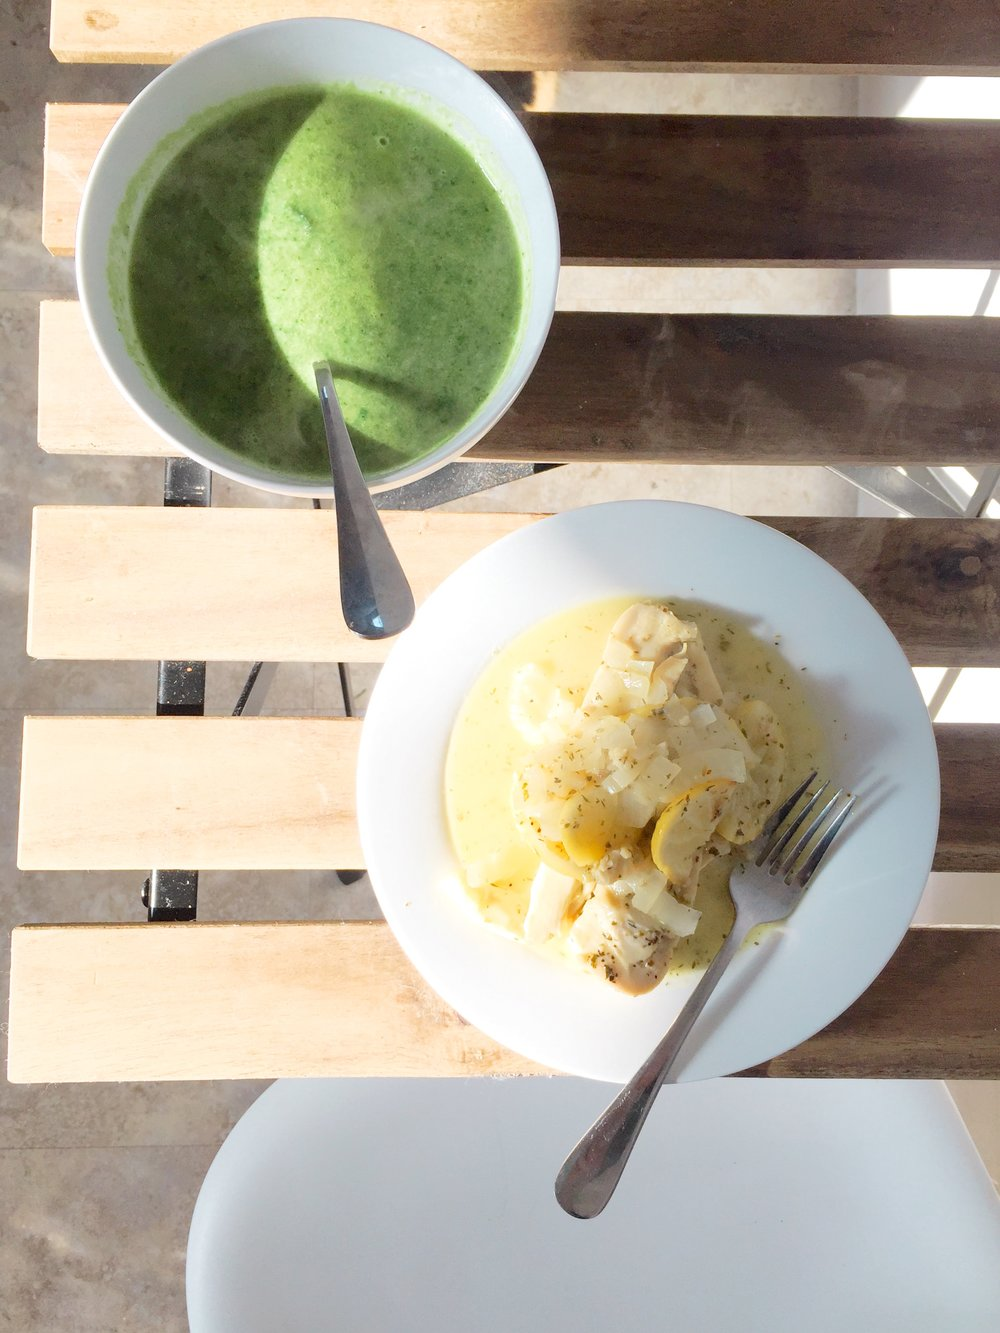 Lemon chicken and broccoli and spinach soup made with coconut milk